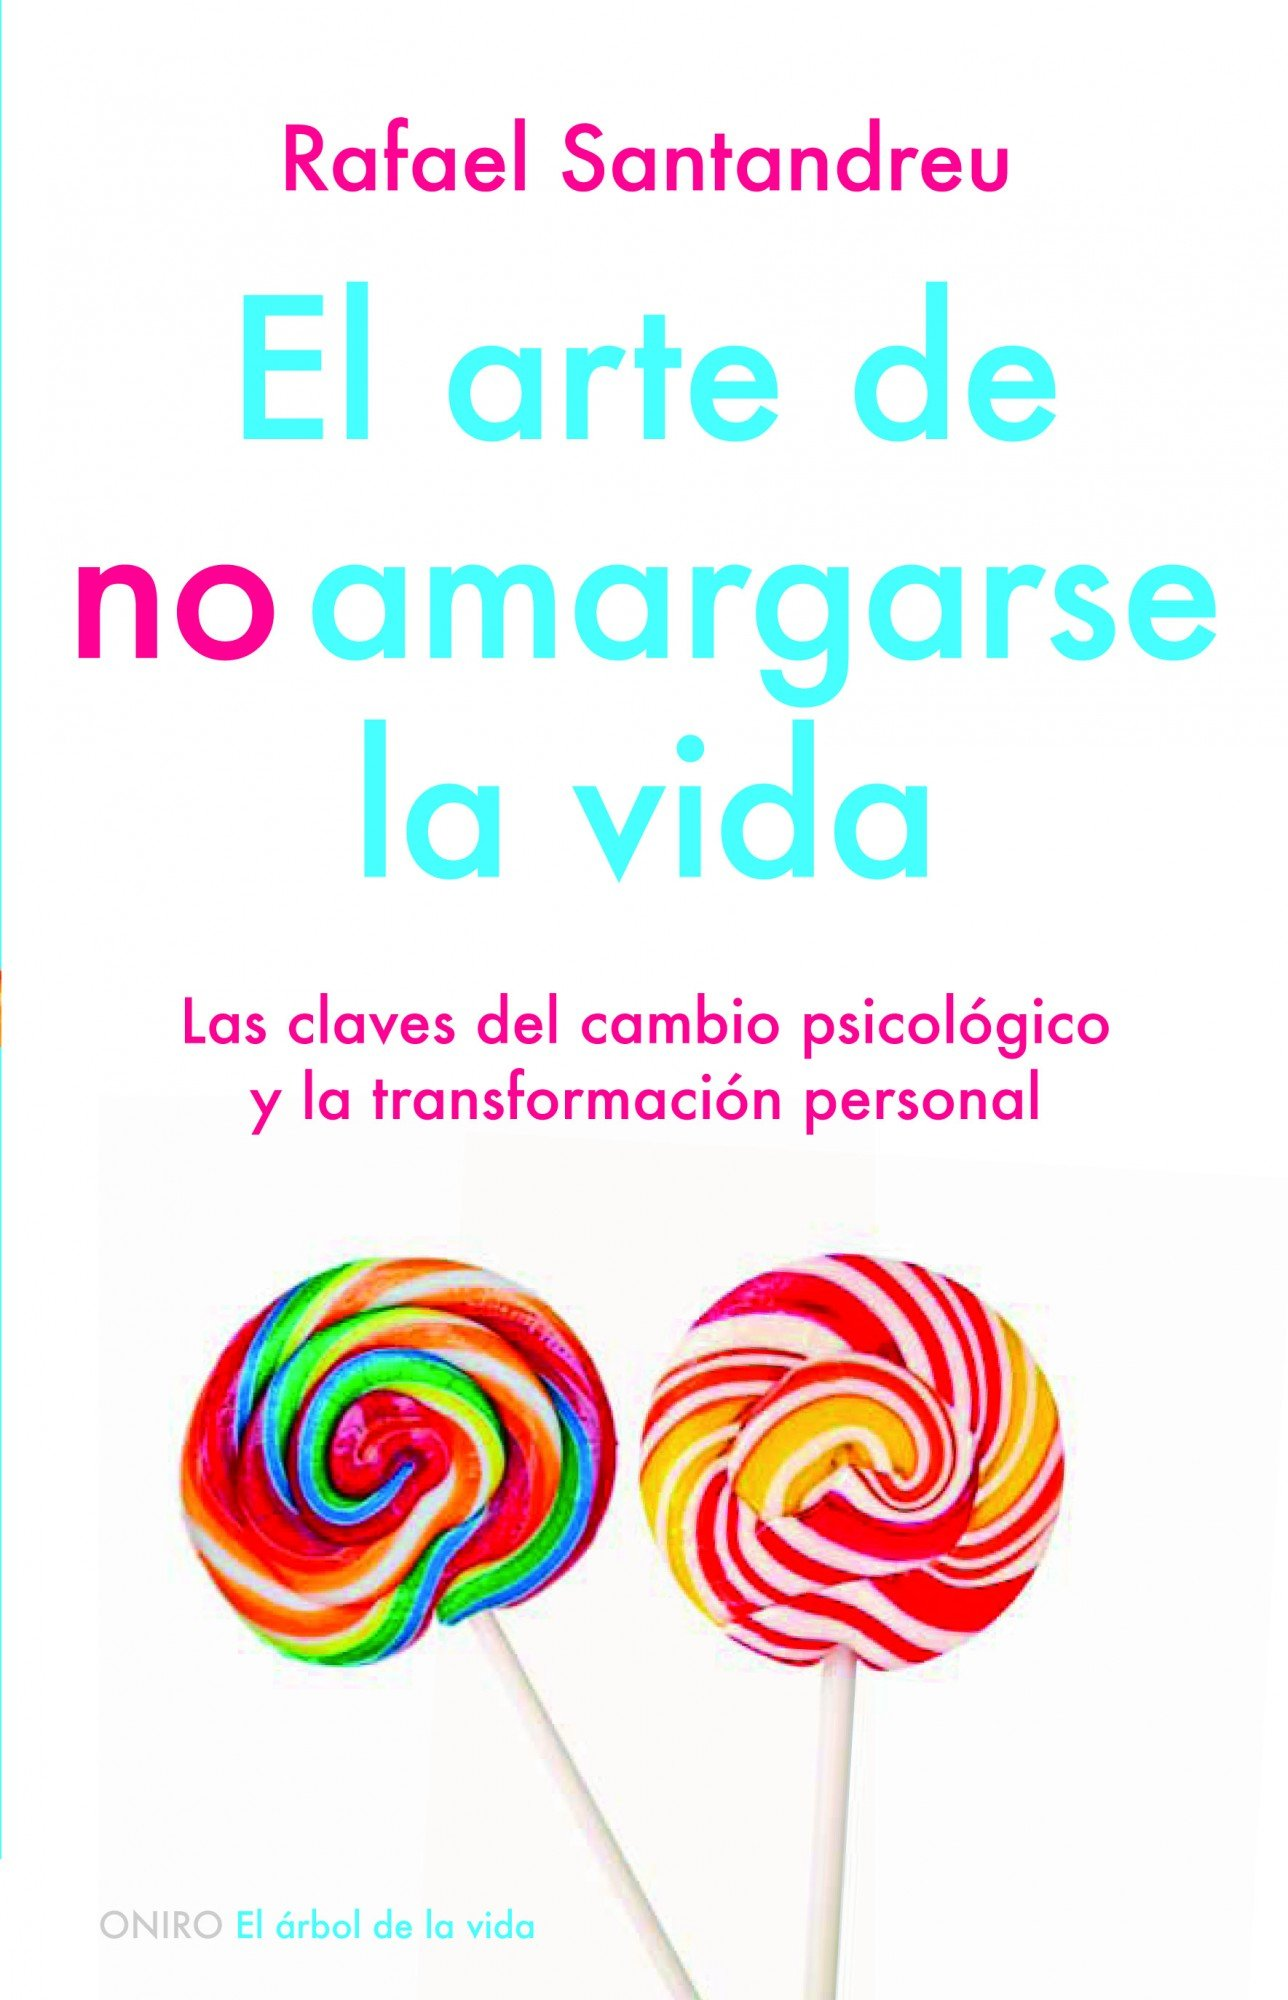 El arte de no amargarse la vida (Spanish Edition): Rafael Santandreu: 9788497545464: Amazon.com: Books